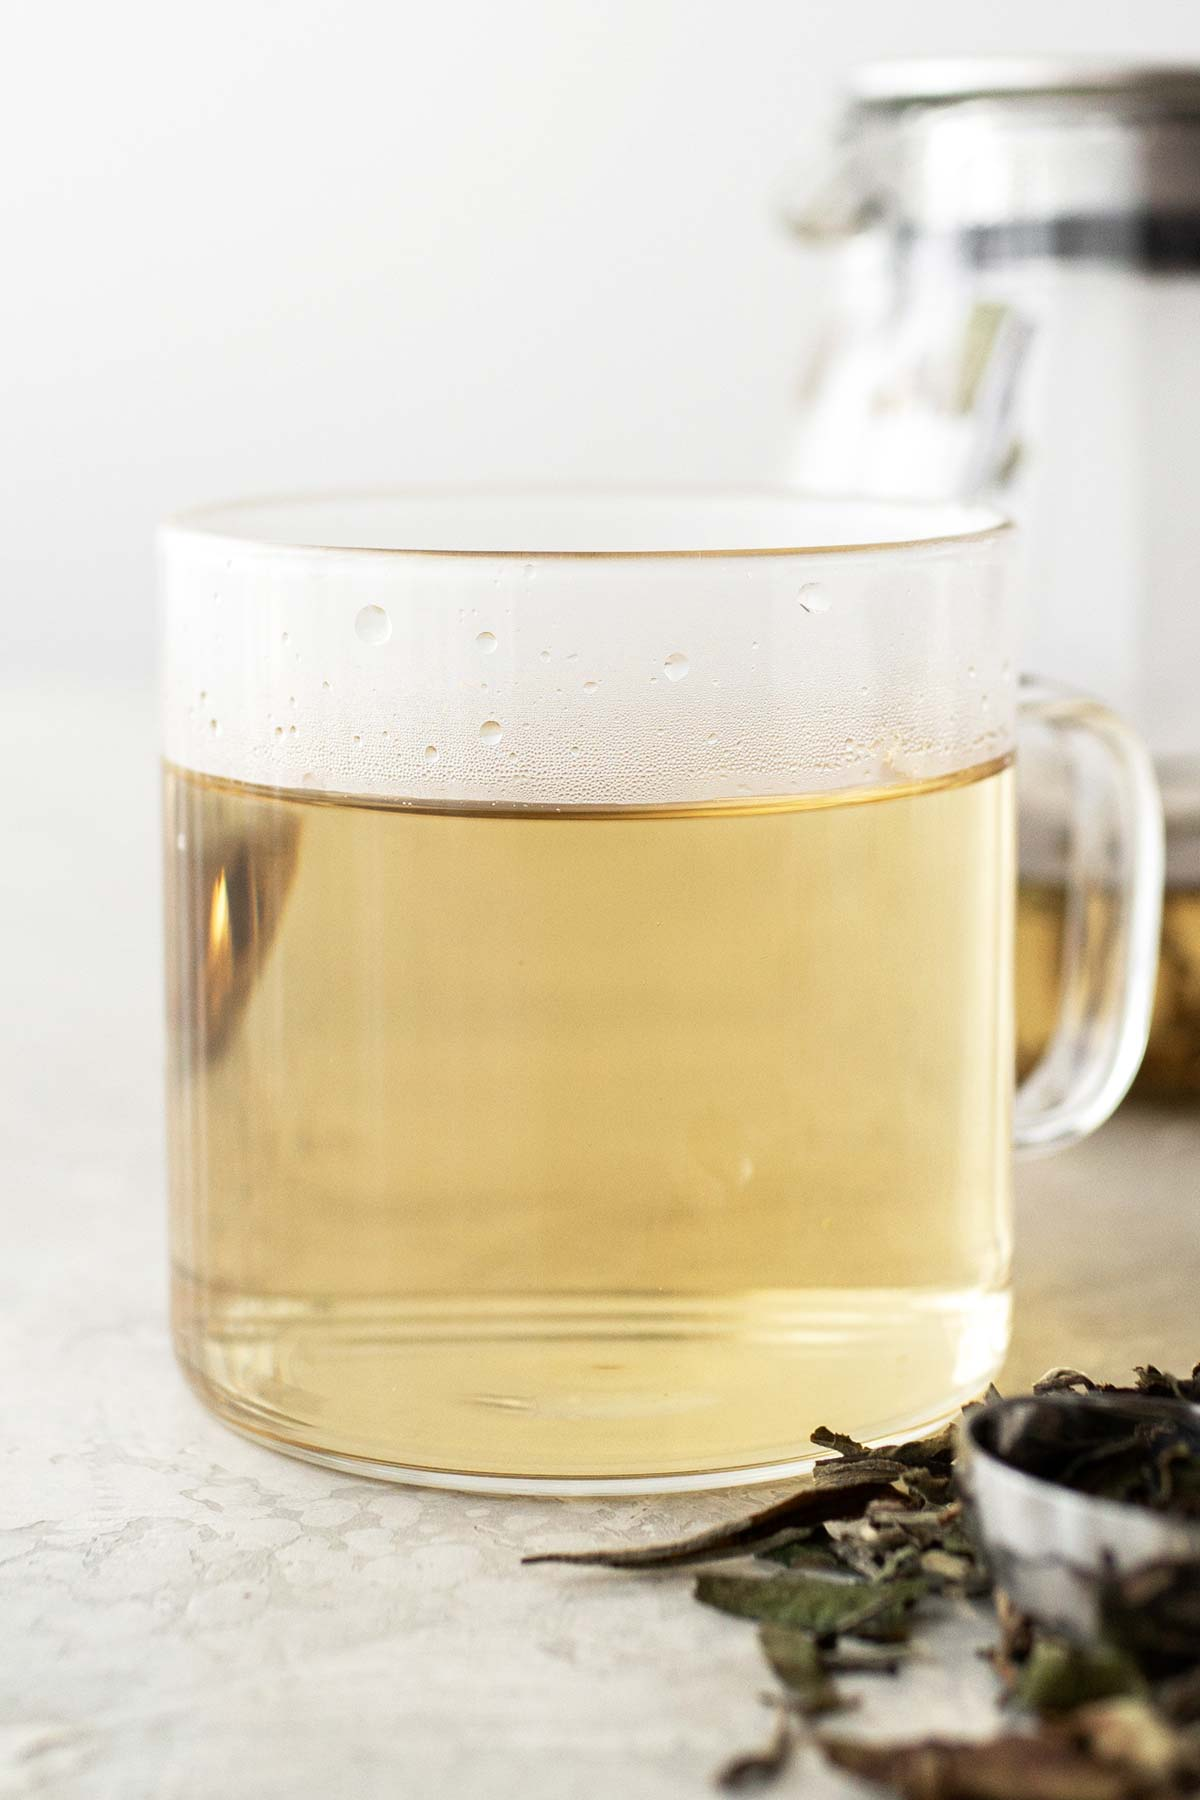 White Peony tea in a glass mug with teapot in background.